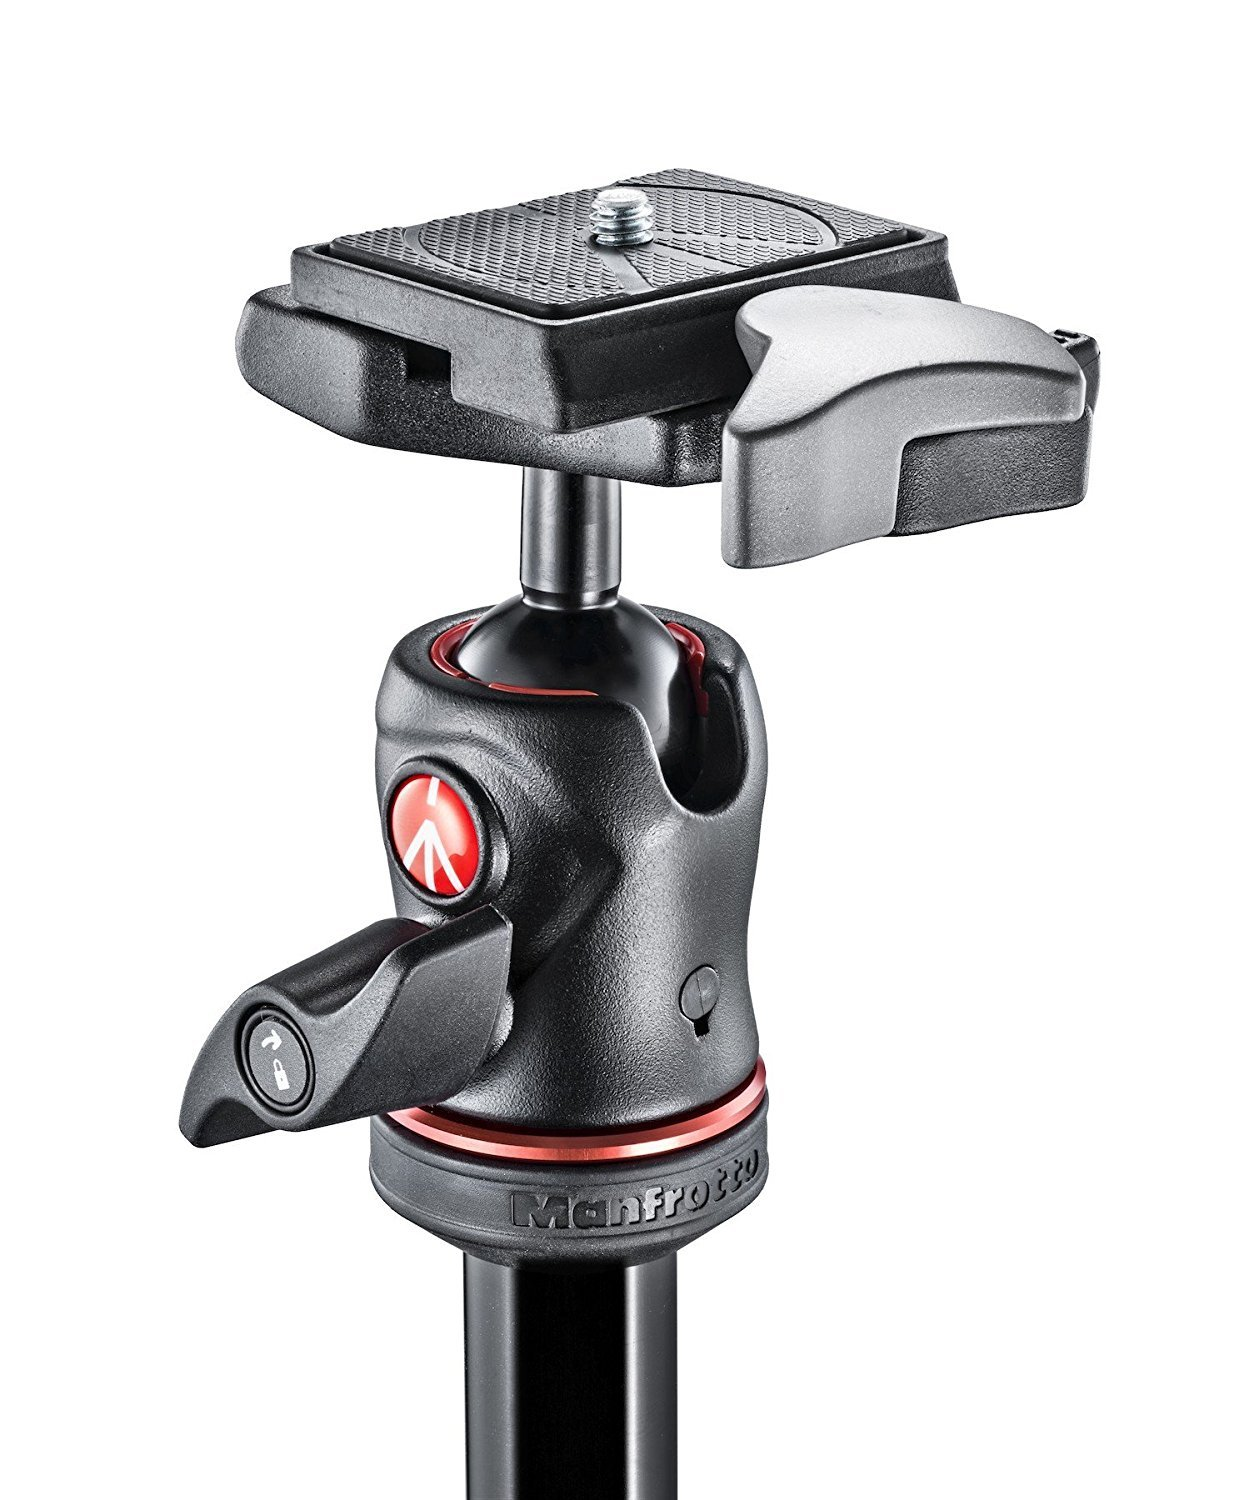 Manfrotto MKBFRC4-BH BeFree Compact Travel Carbon Fiber Tripod and Two ZAYKiR RC2 Quick Release Plates (Carbon)